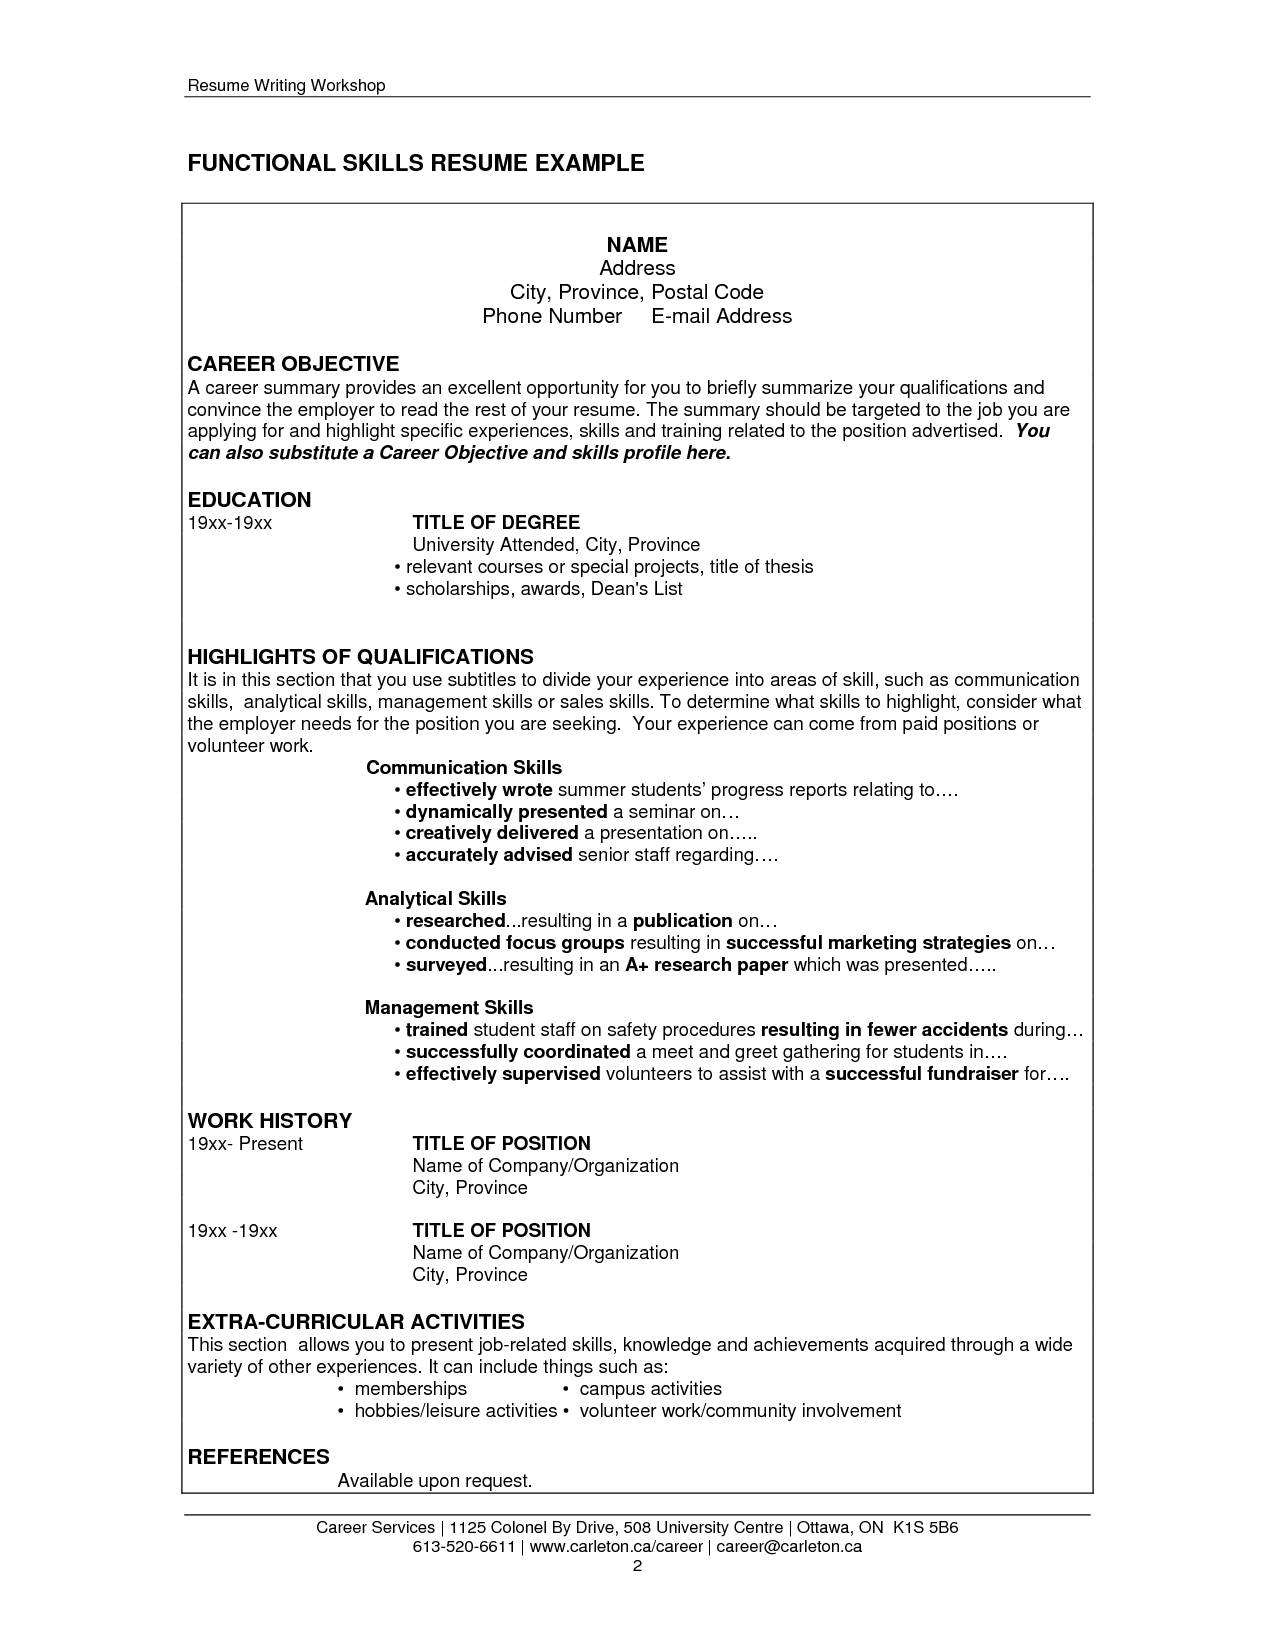 skills resume templates - Pertamini.co